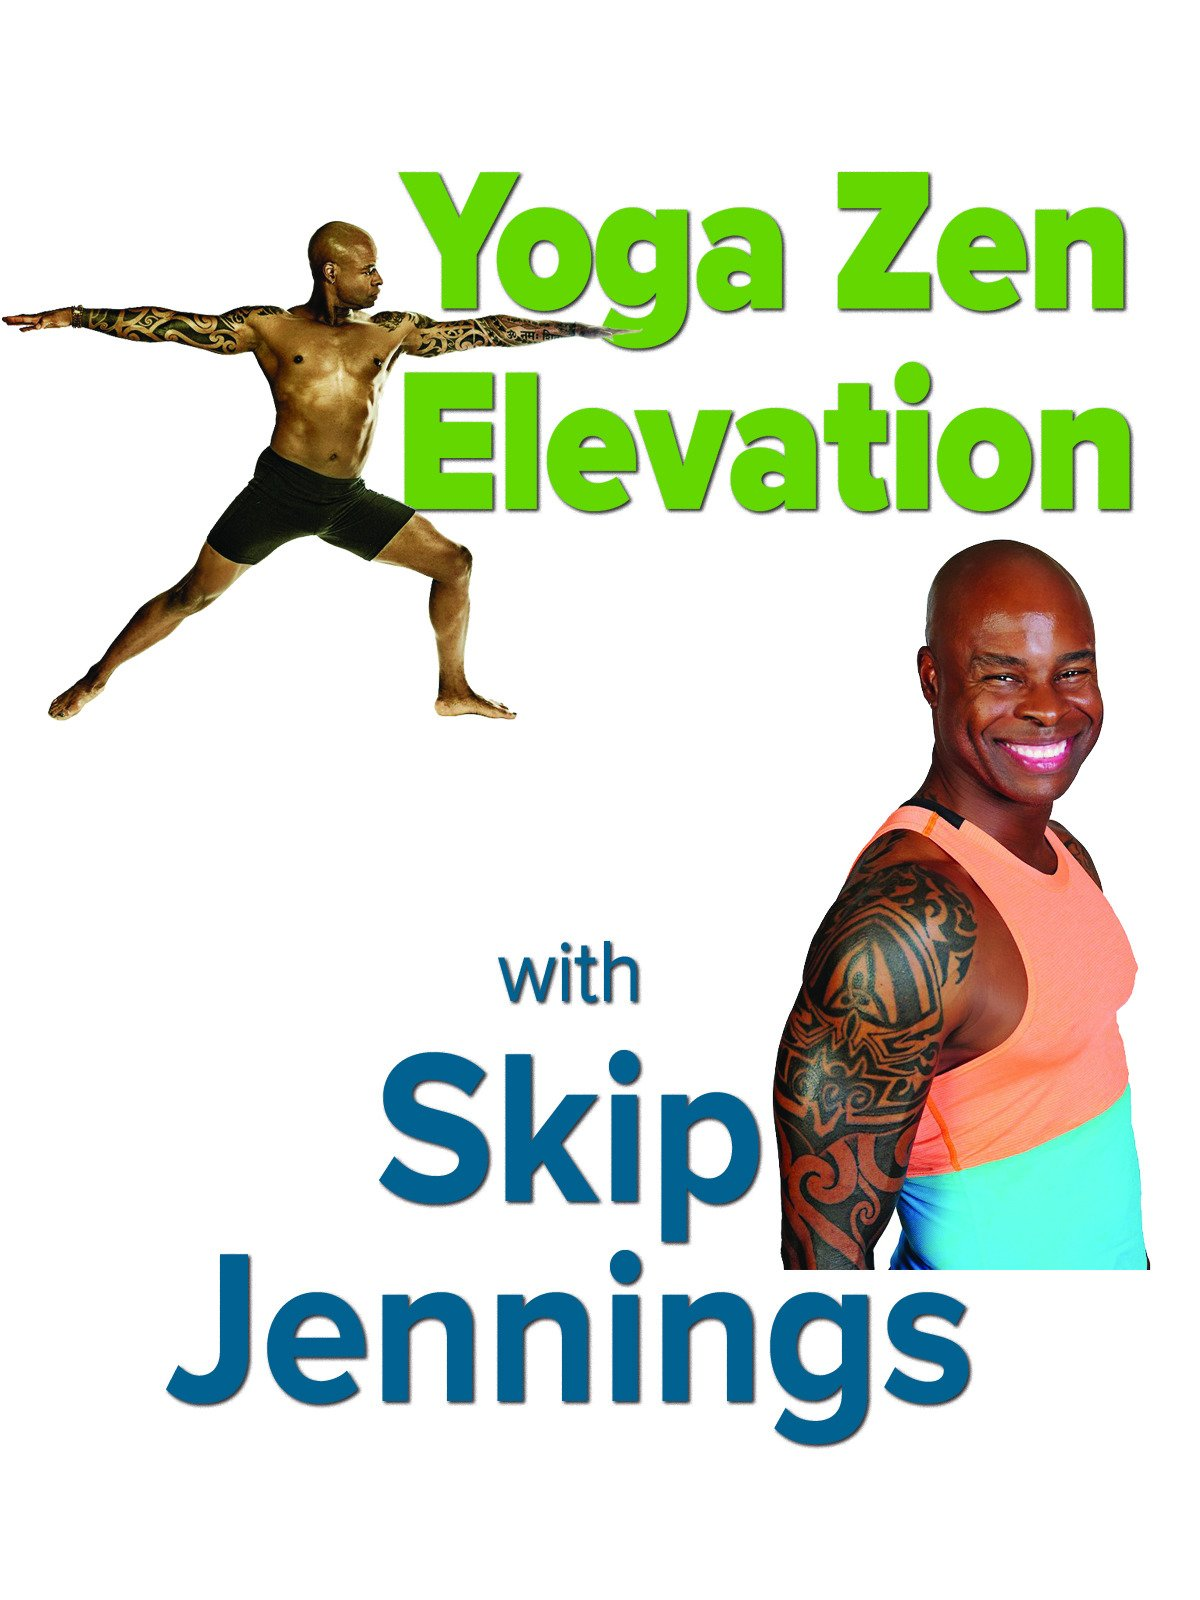 Yoga Zen Elevation with Skip Jennings on Amazon Prime Video UK